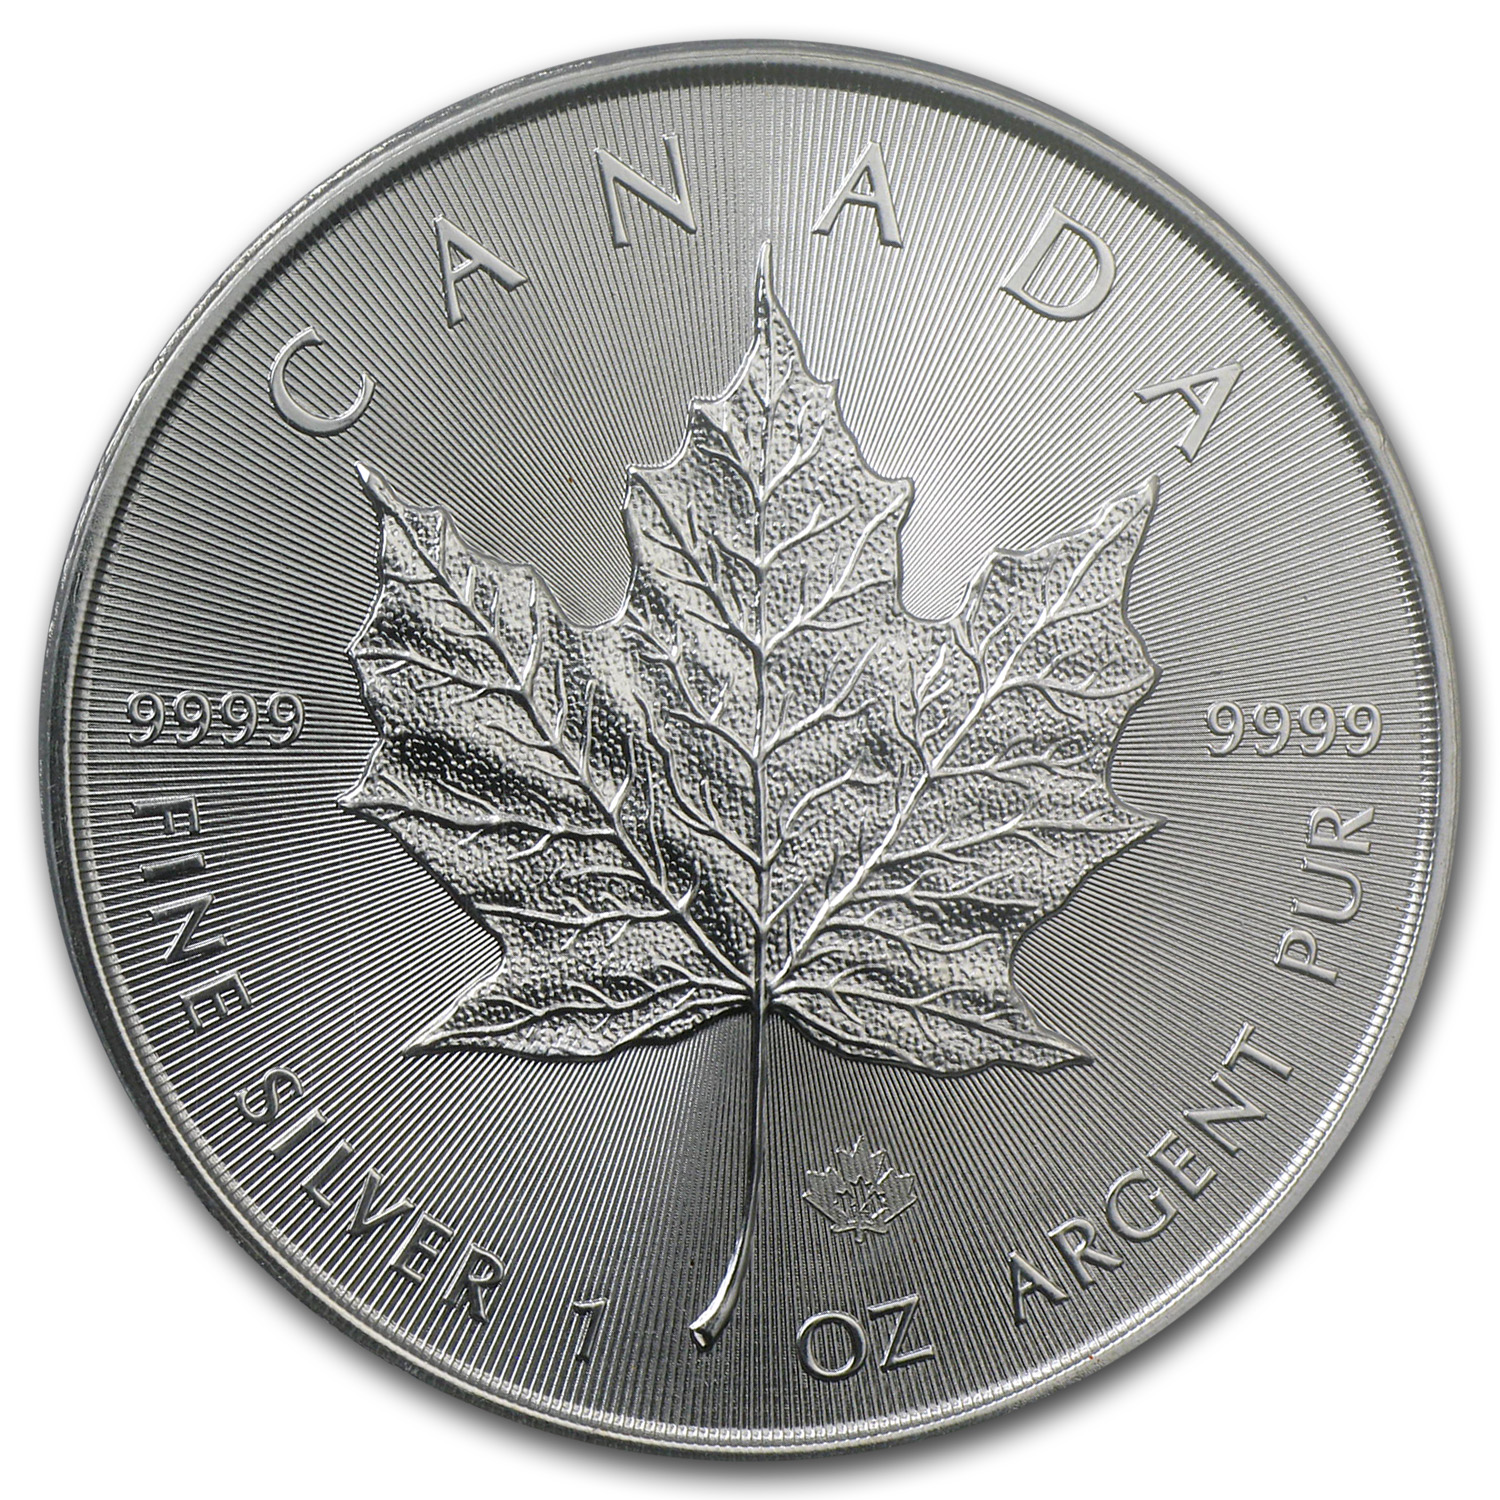 2014 Canada 1 oz Silver Maple Leaf MS-68 PCGS (First Strike)